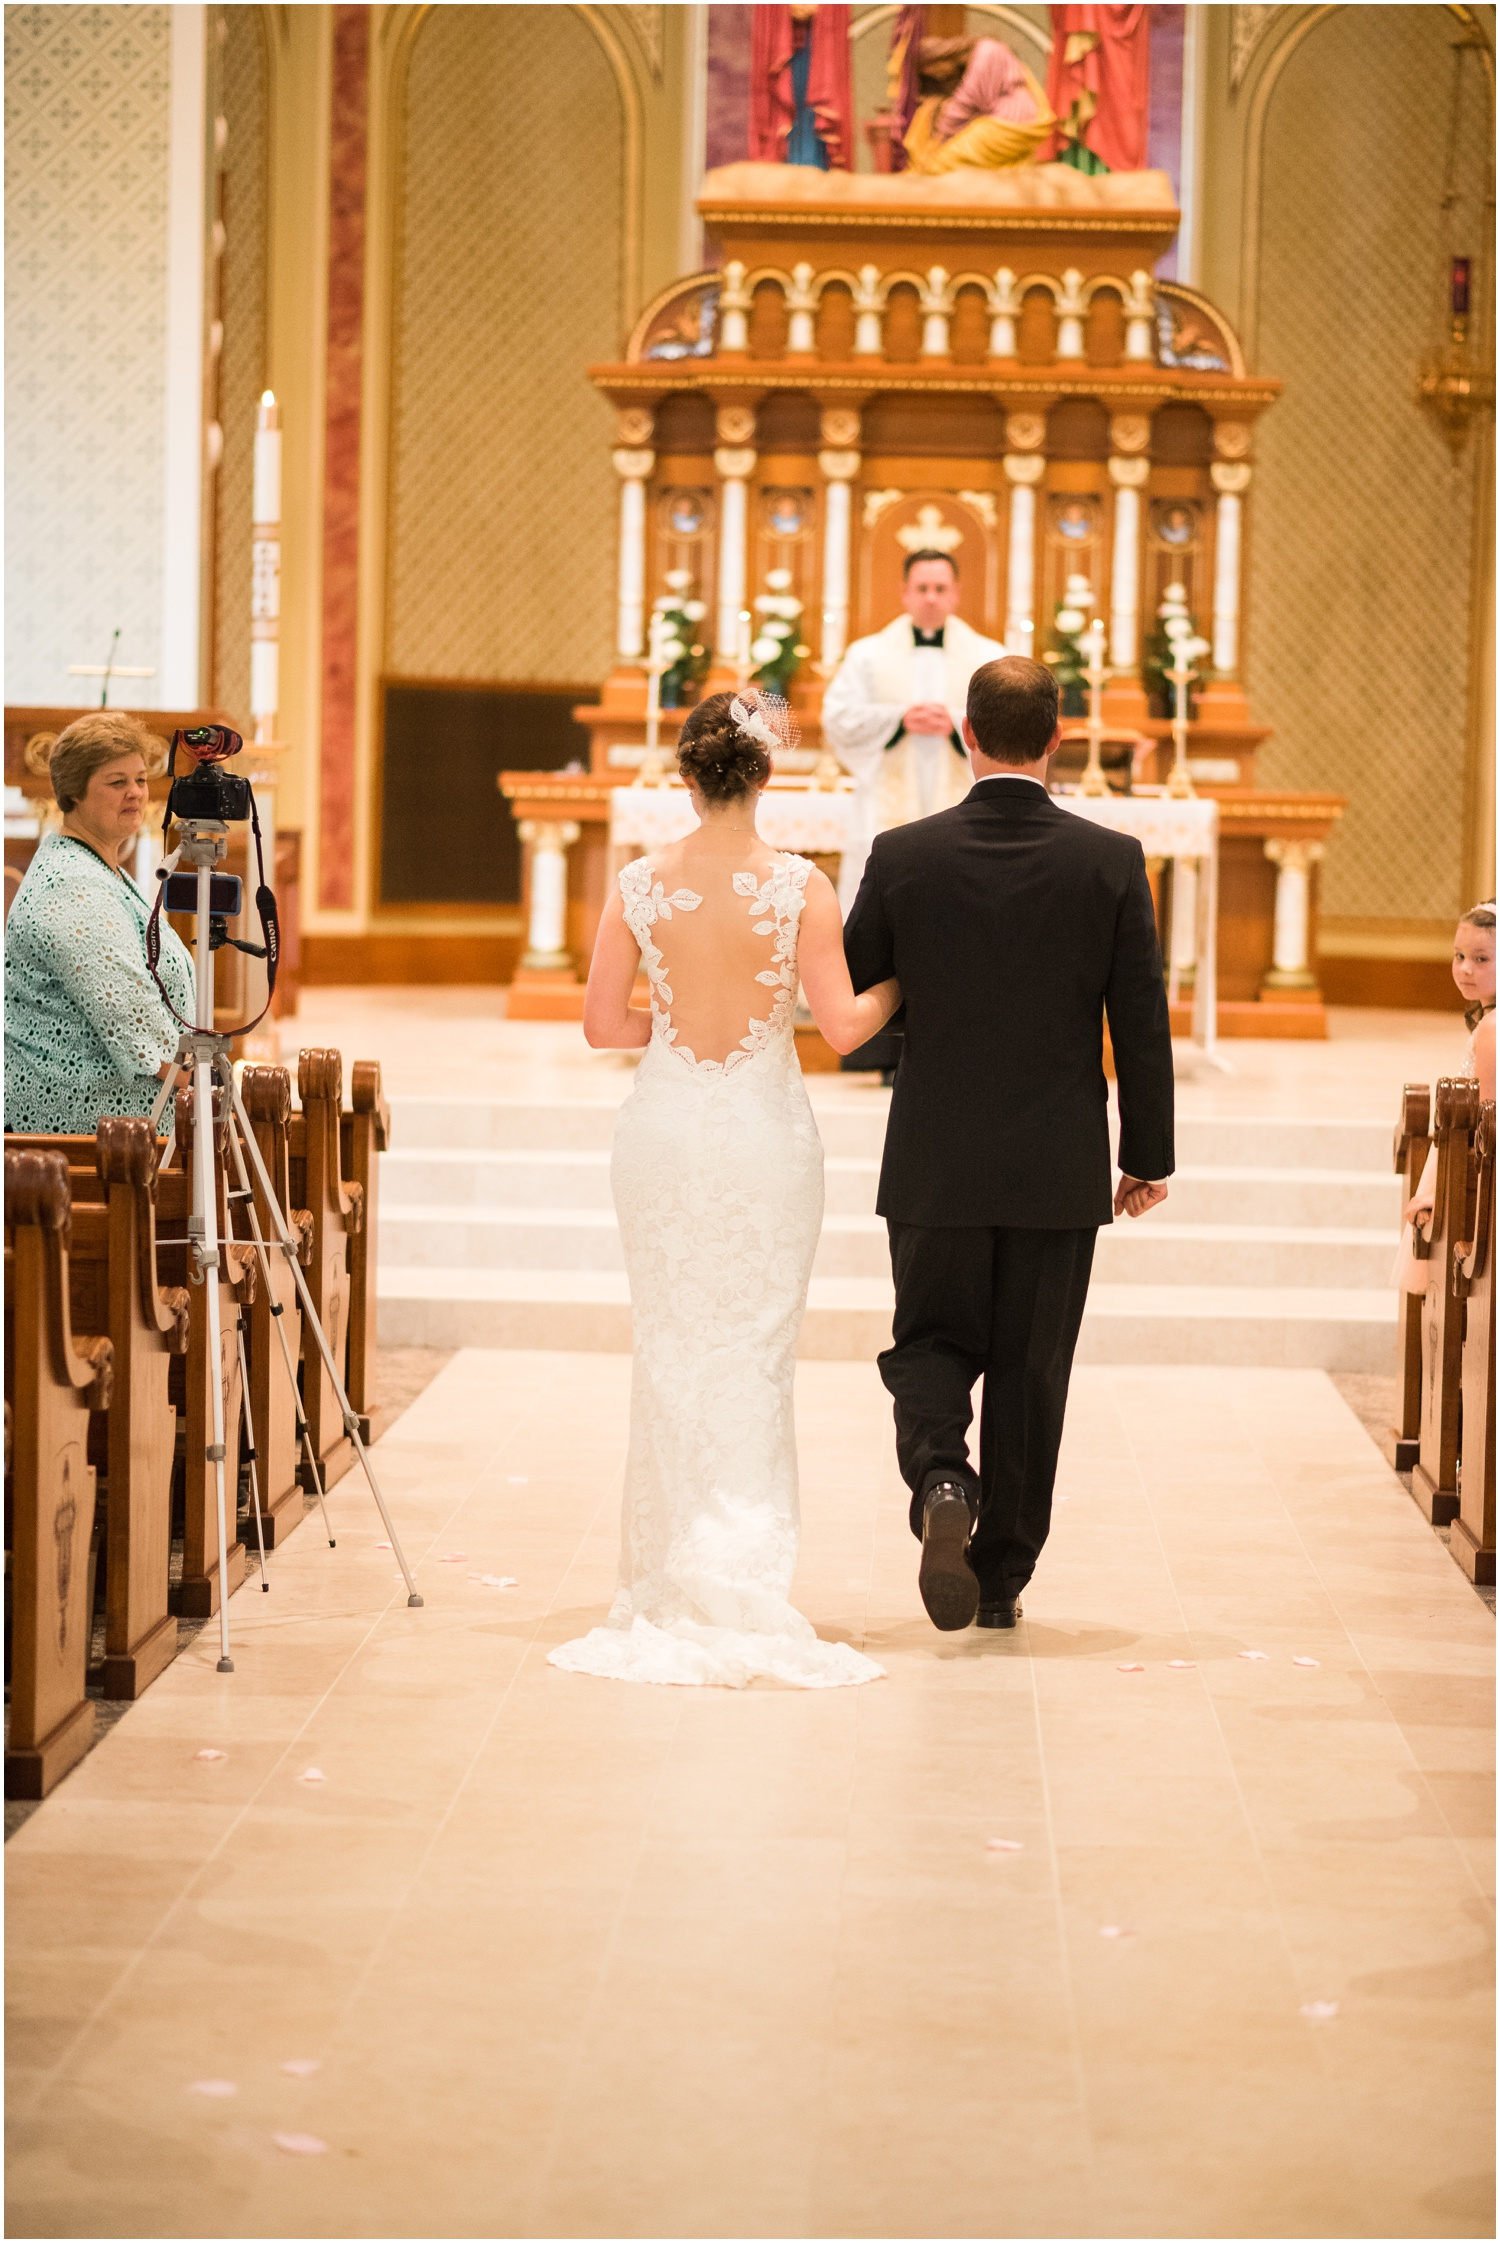 WISCONSIN DELLS WEDDING PHOTOGRAPHER | ST. CECILIA CATHOLIC CHURCH | WISCONSIN DELLS, WI | WEDDING_0224.jpg